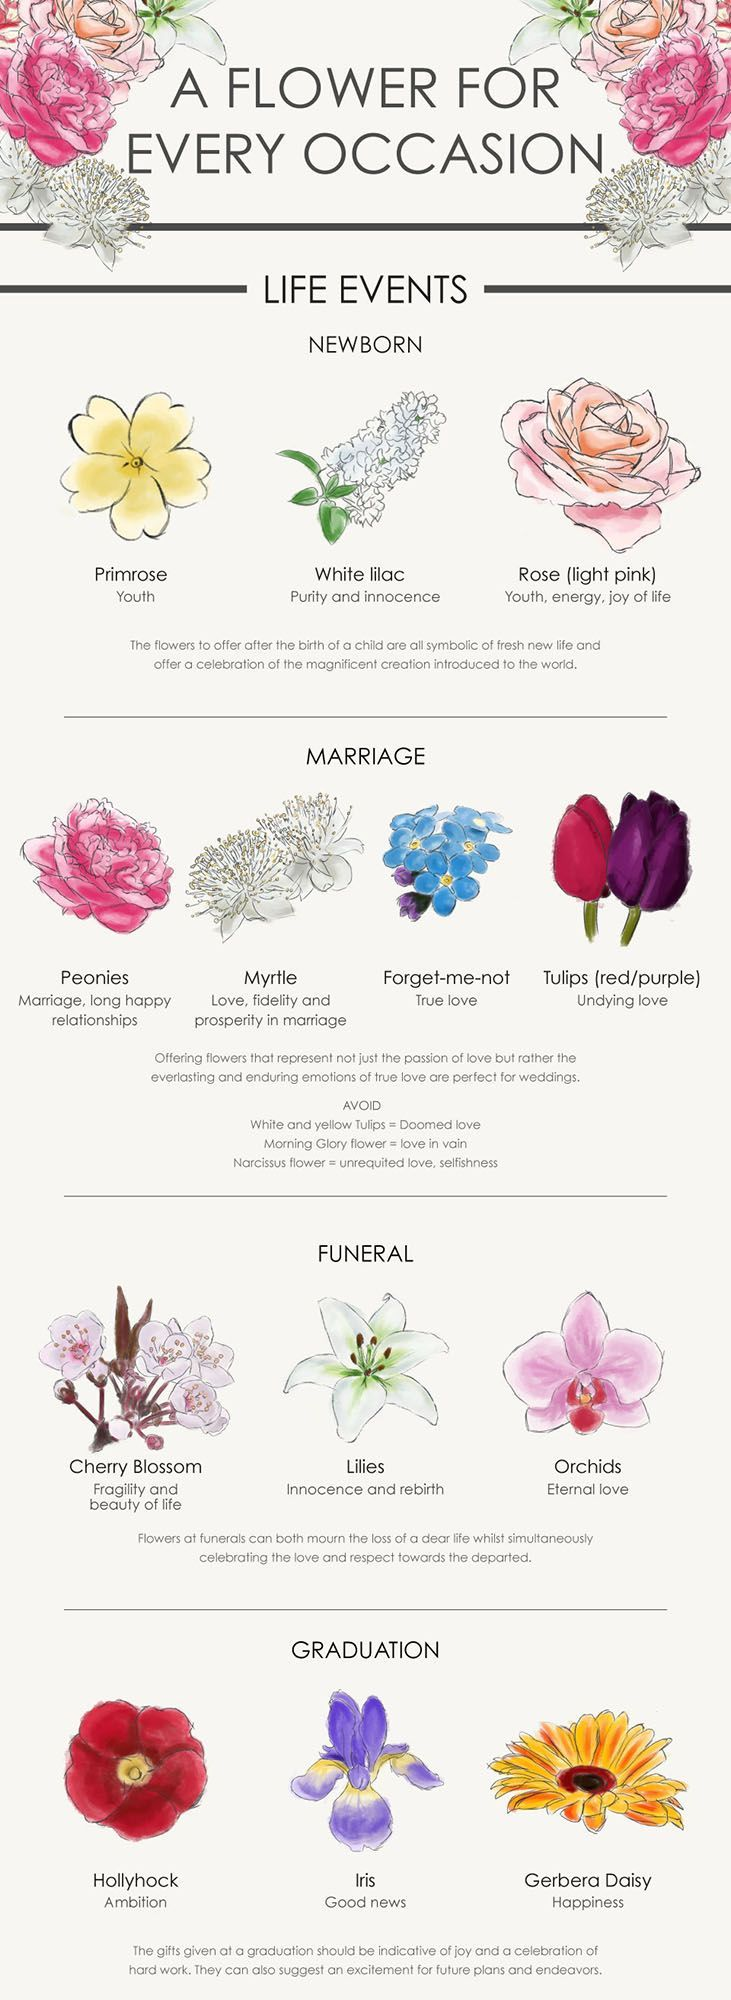 A Flower For Every Occasion Your Complete Guide In 2020 Flower Meanings Trendy Flowers Language Of Flowers